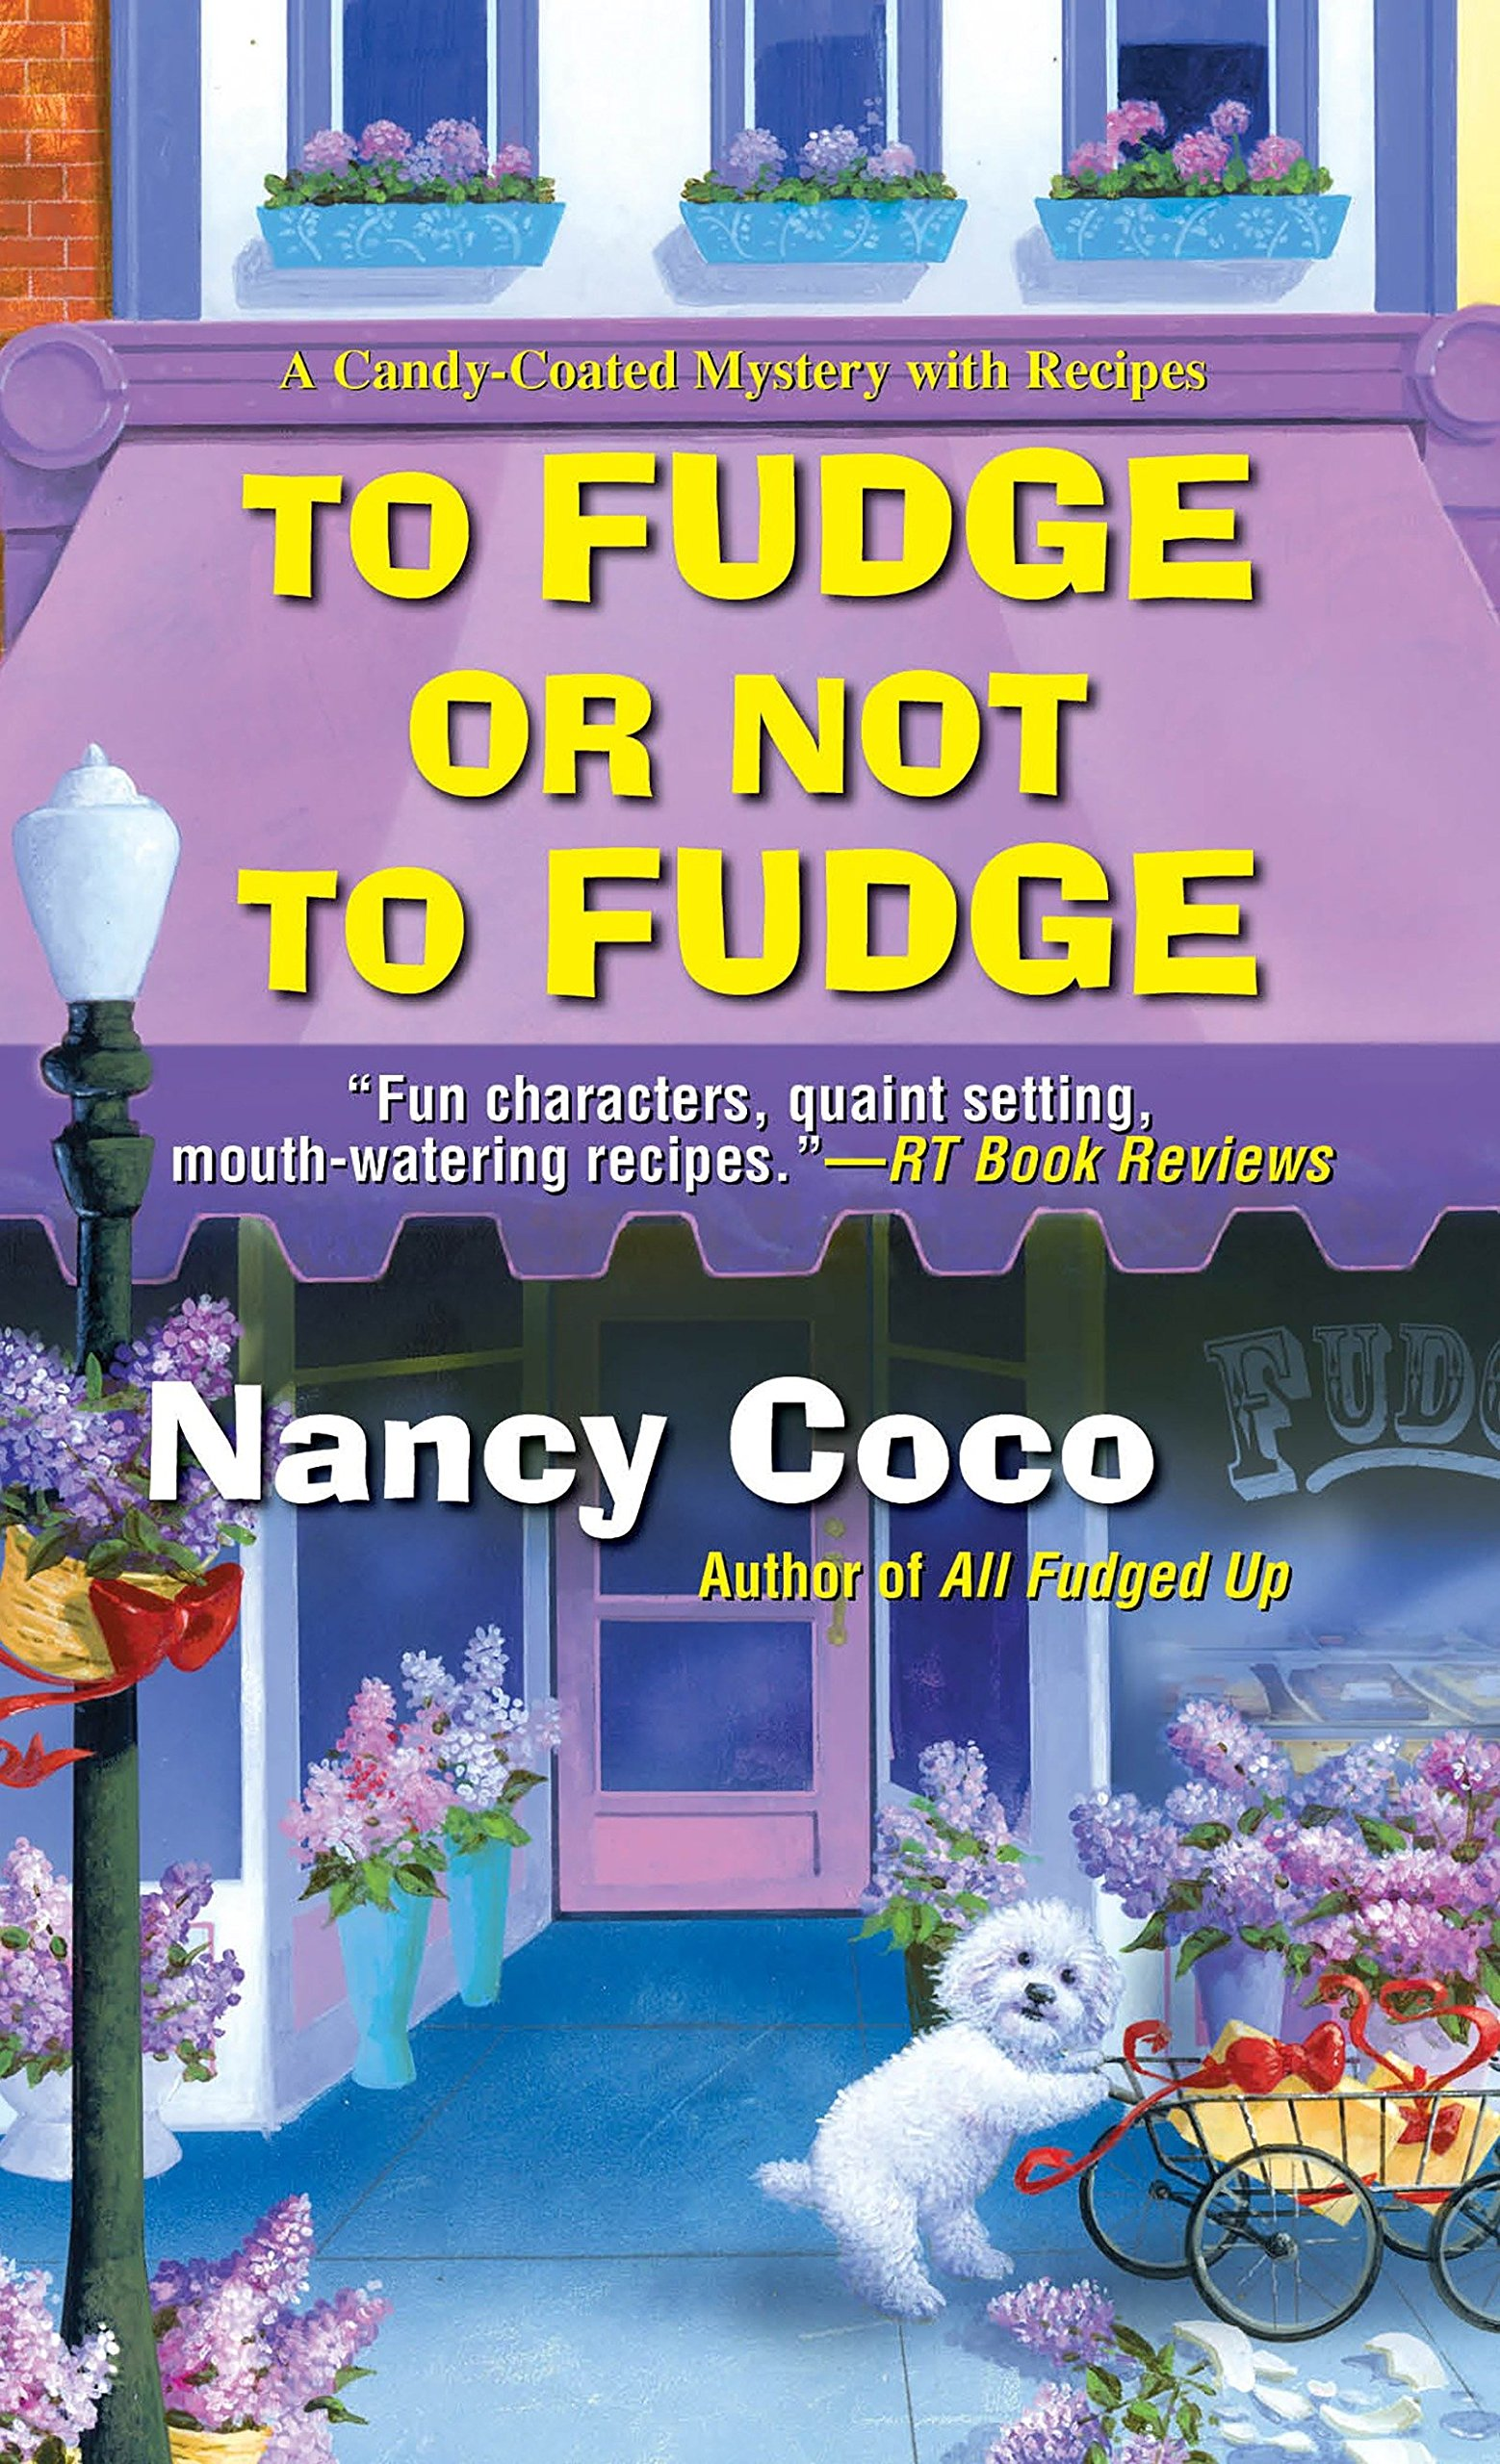 Read Online To Fudge or Not to Fudge (A Candy-coated Mystery) PDF